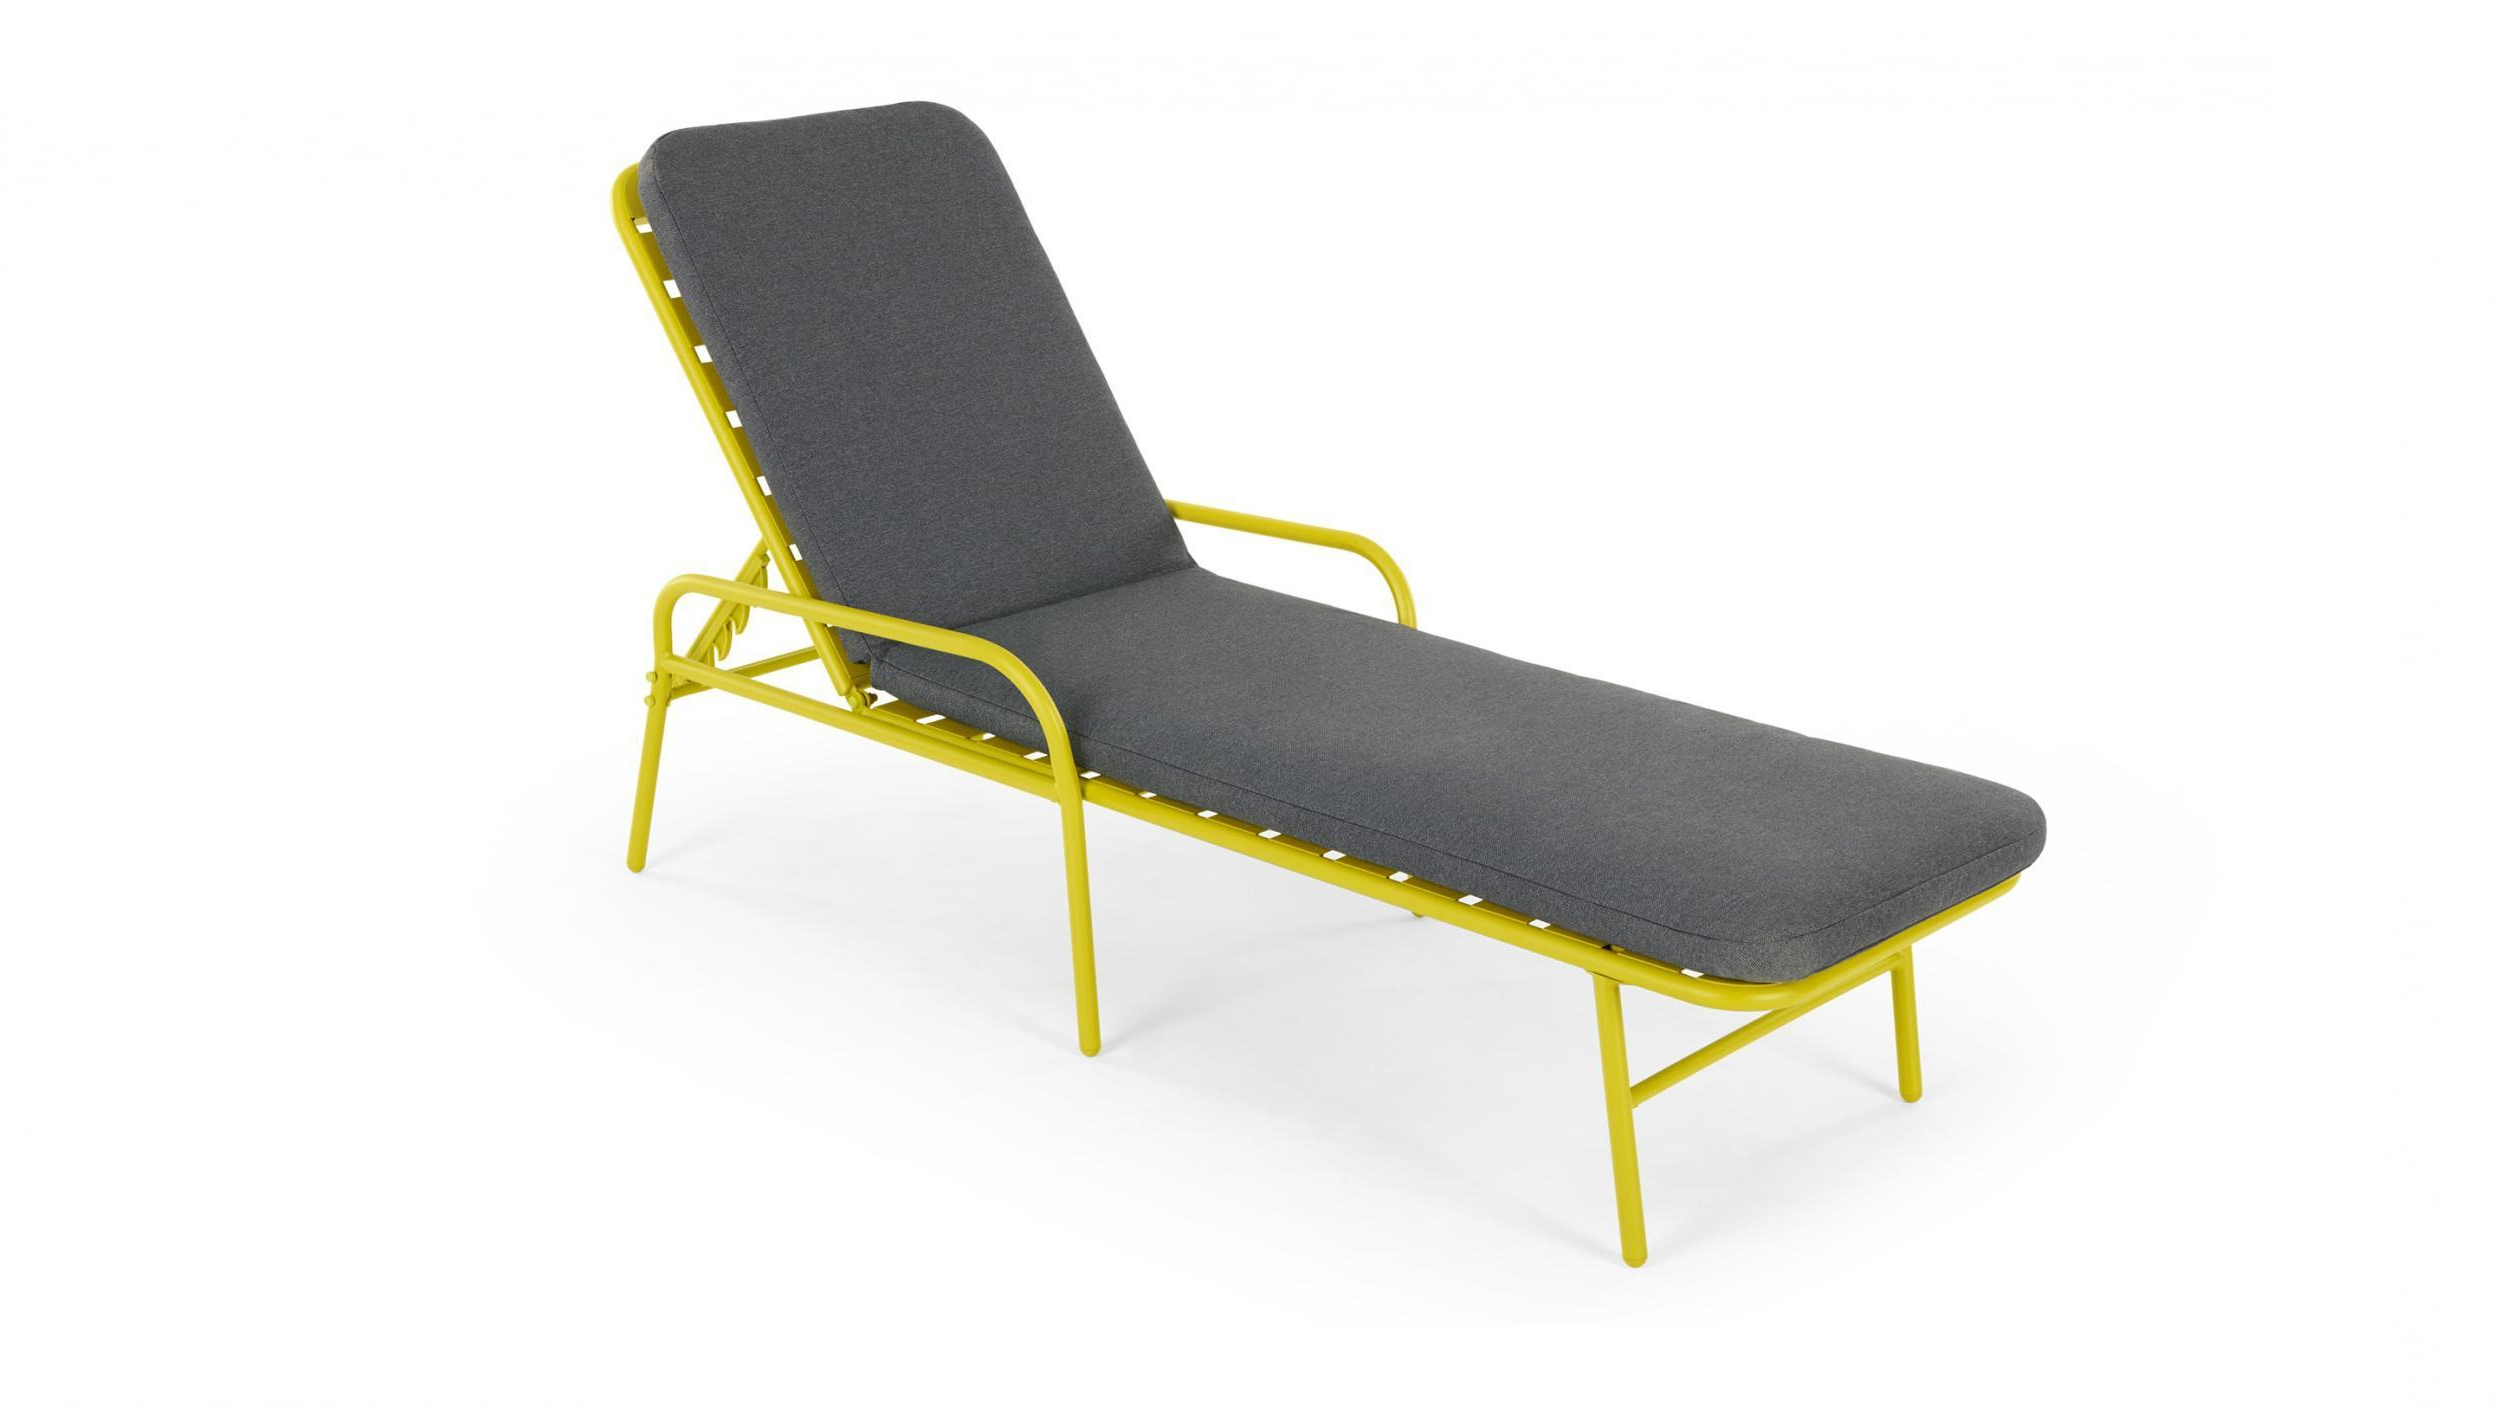 Famous Best Sun Lounger: Choose From Styles That Are Comfortable Regarding Curved Folding Chaise Loungers (View 16 of 25)